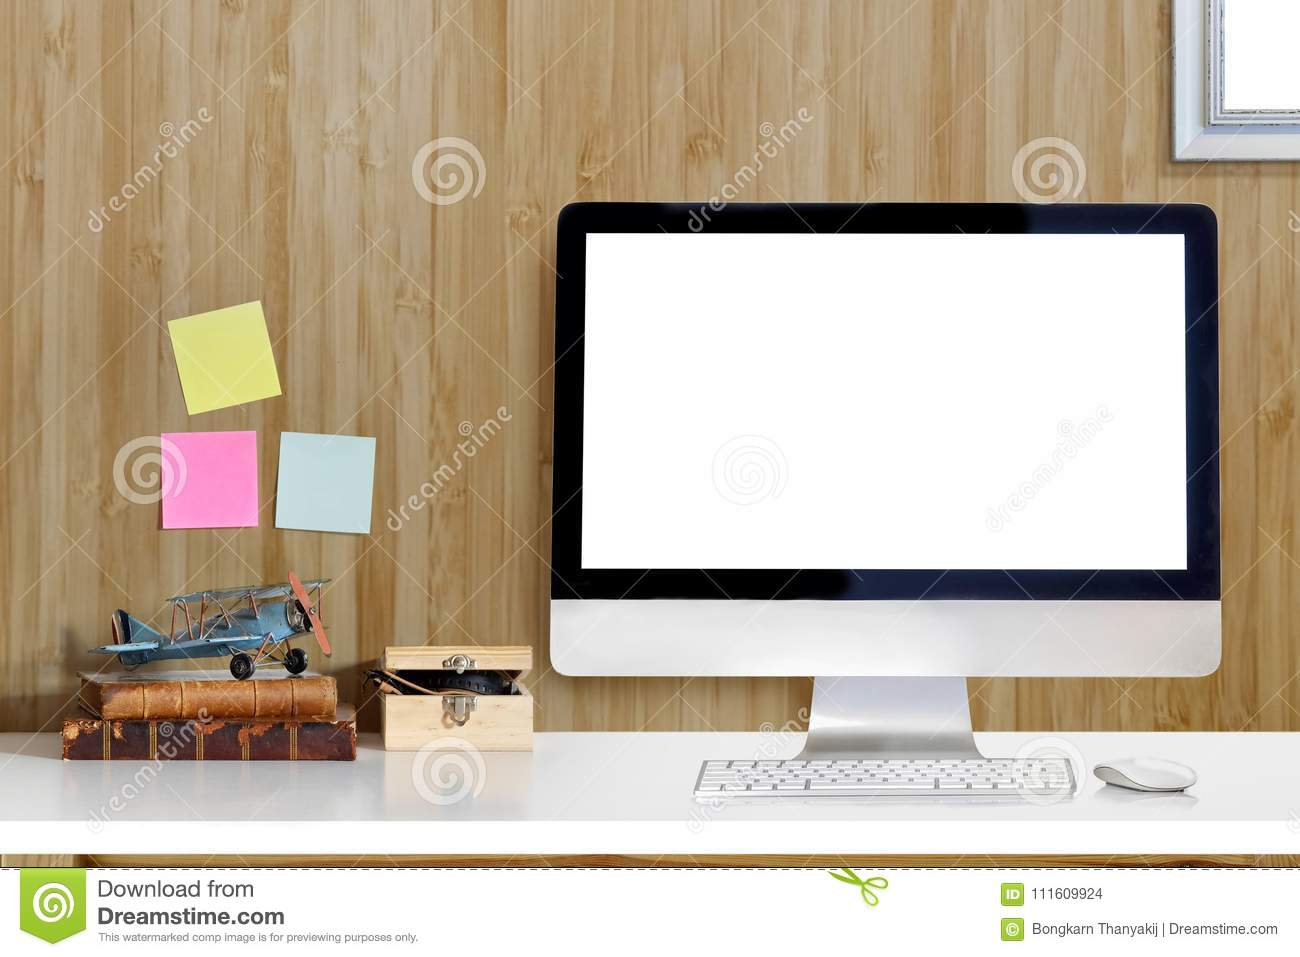 Attirant Download Workspace Mockup Desk With Desktop Computer And Office Supplies.  Stock Photo   Image Of